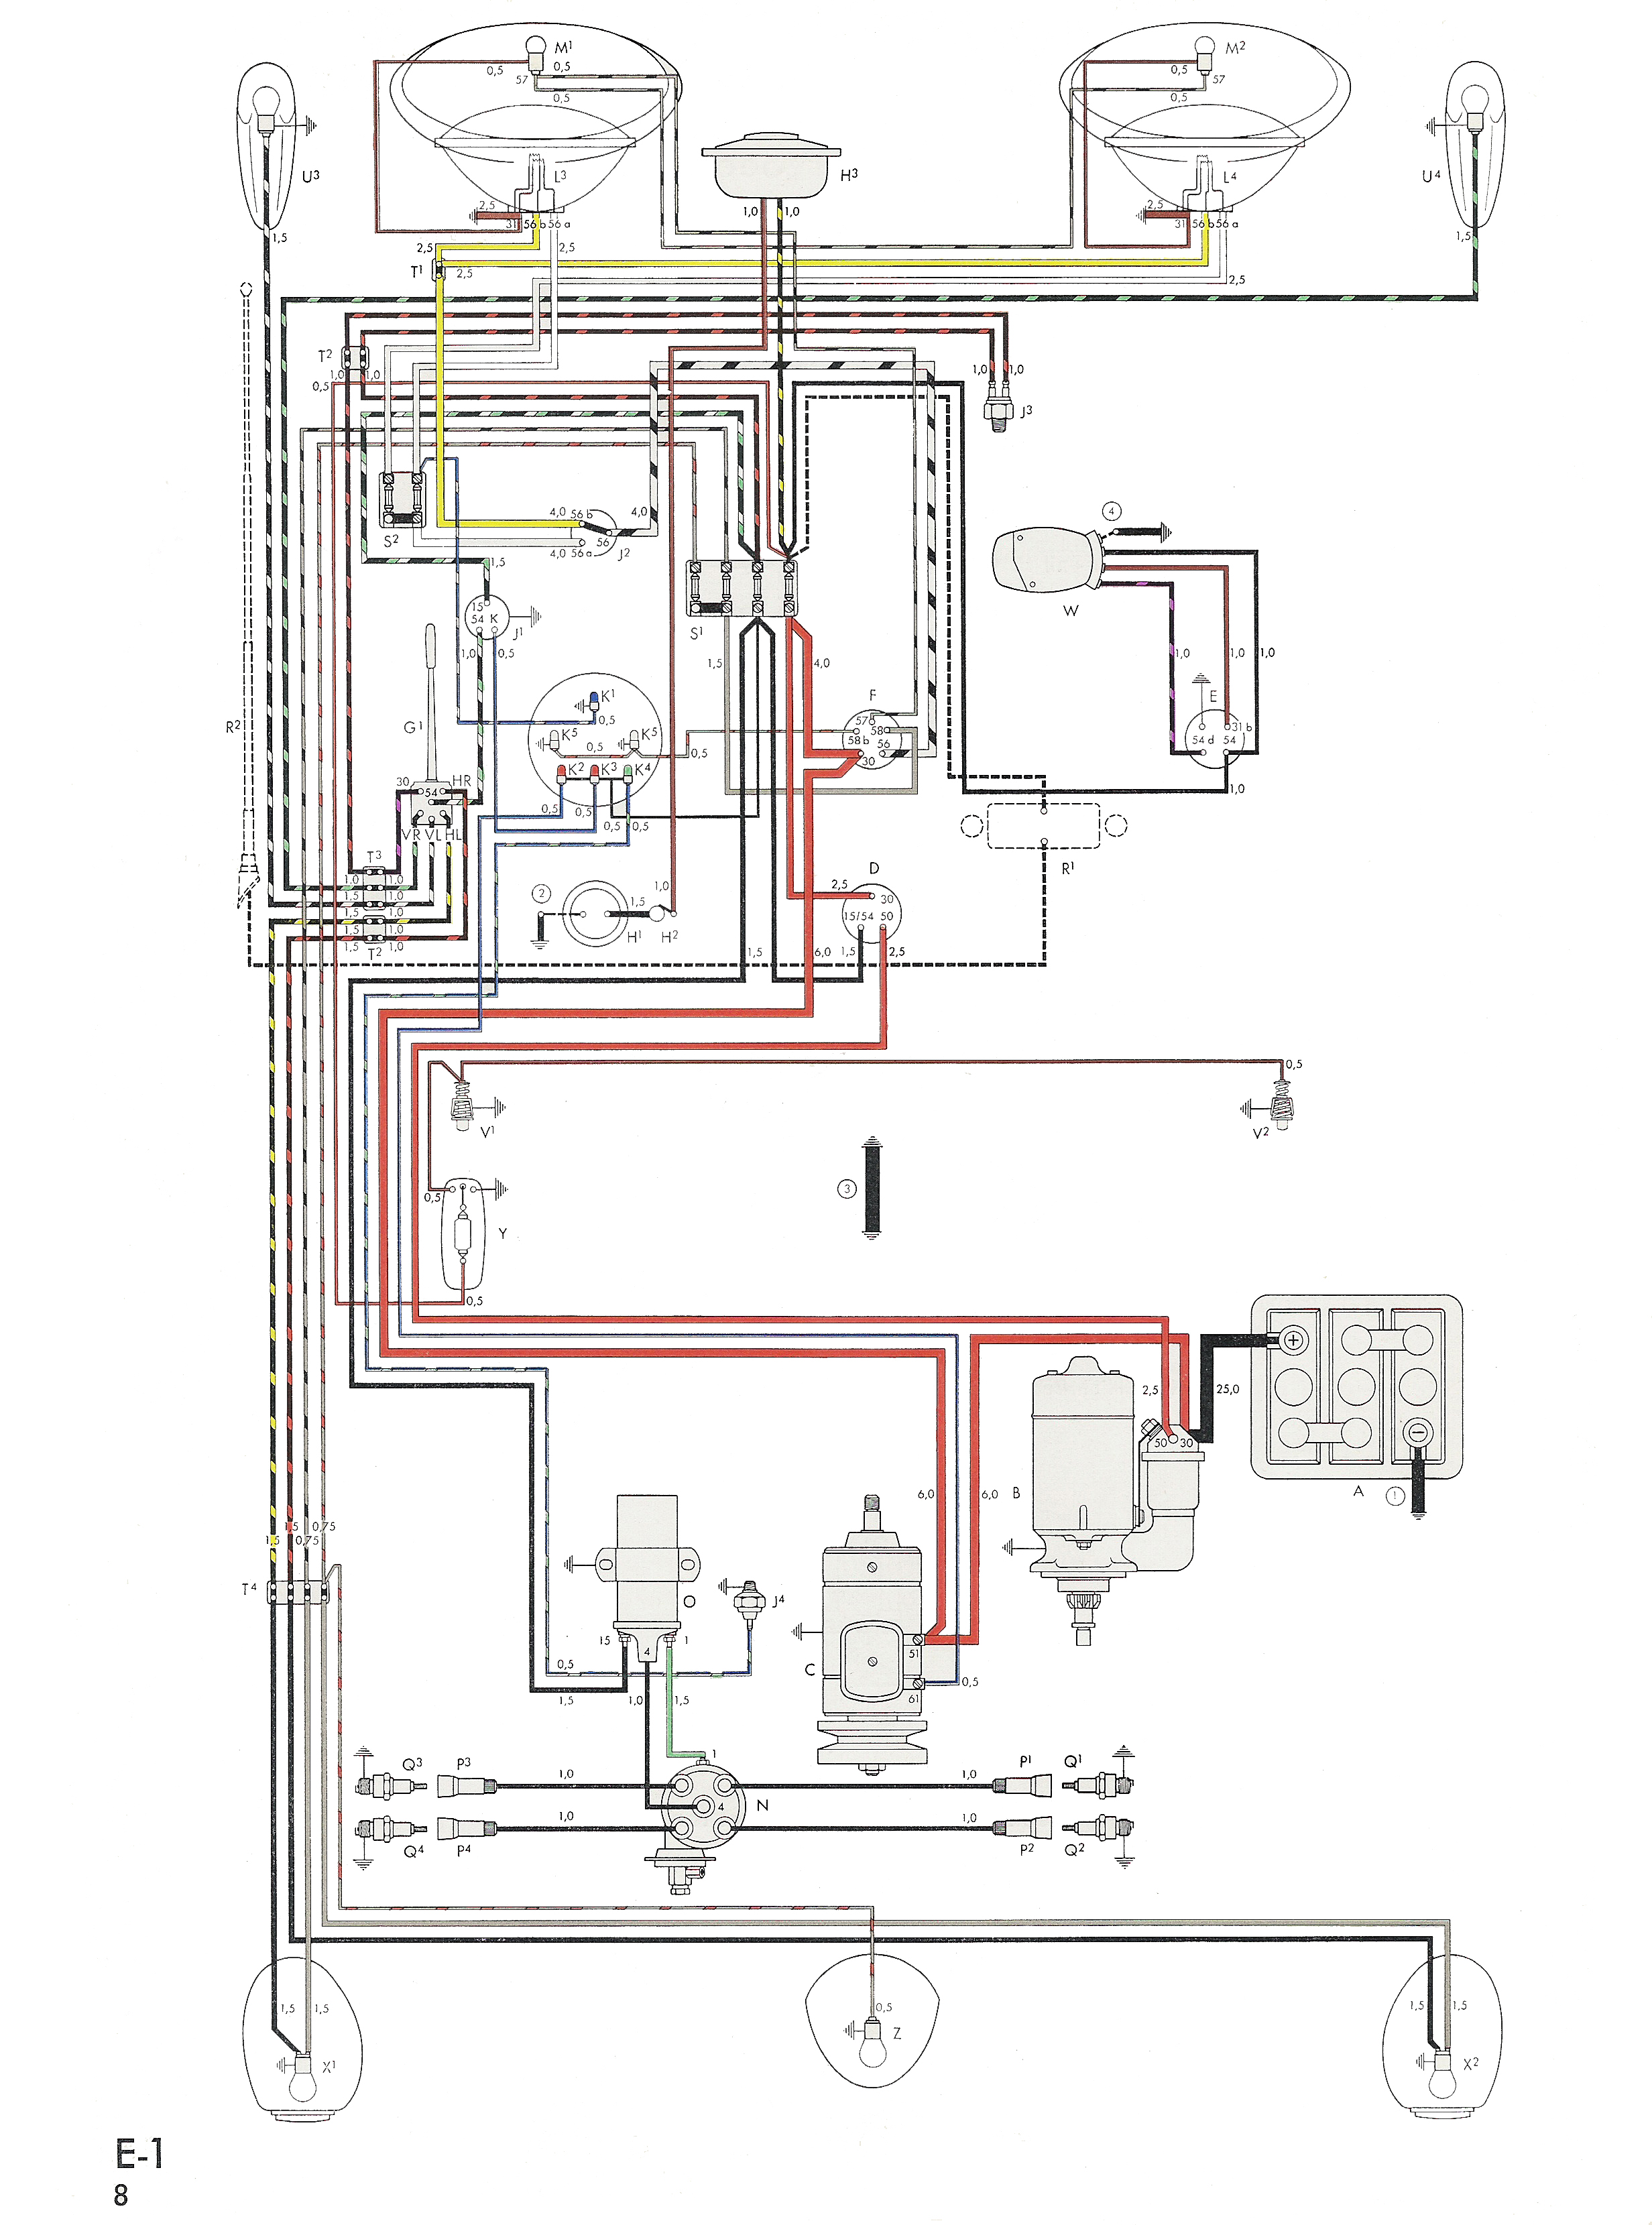 bug_58_USA_300dpi thesamba com type 1 wiring diagrams vw engine wiring diagram at crackthecode.co